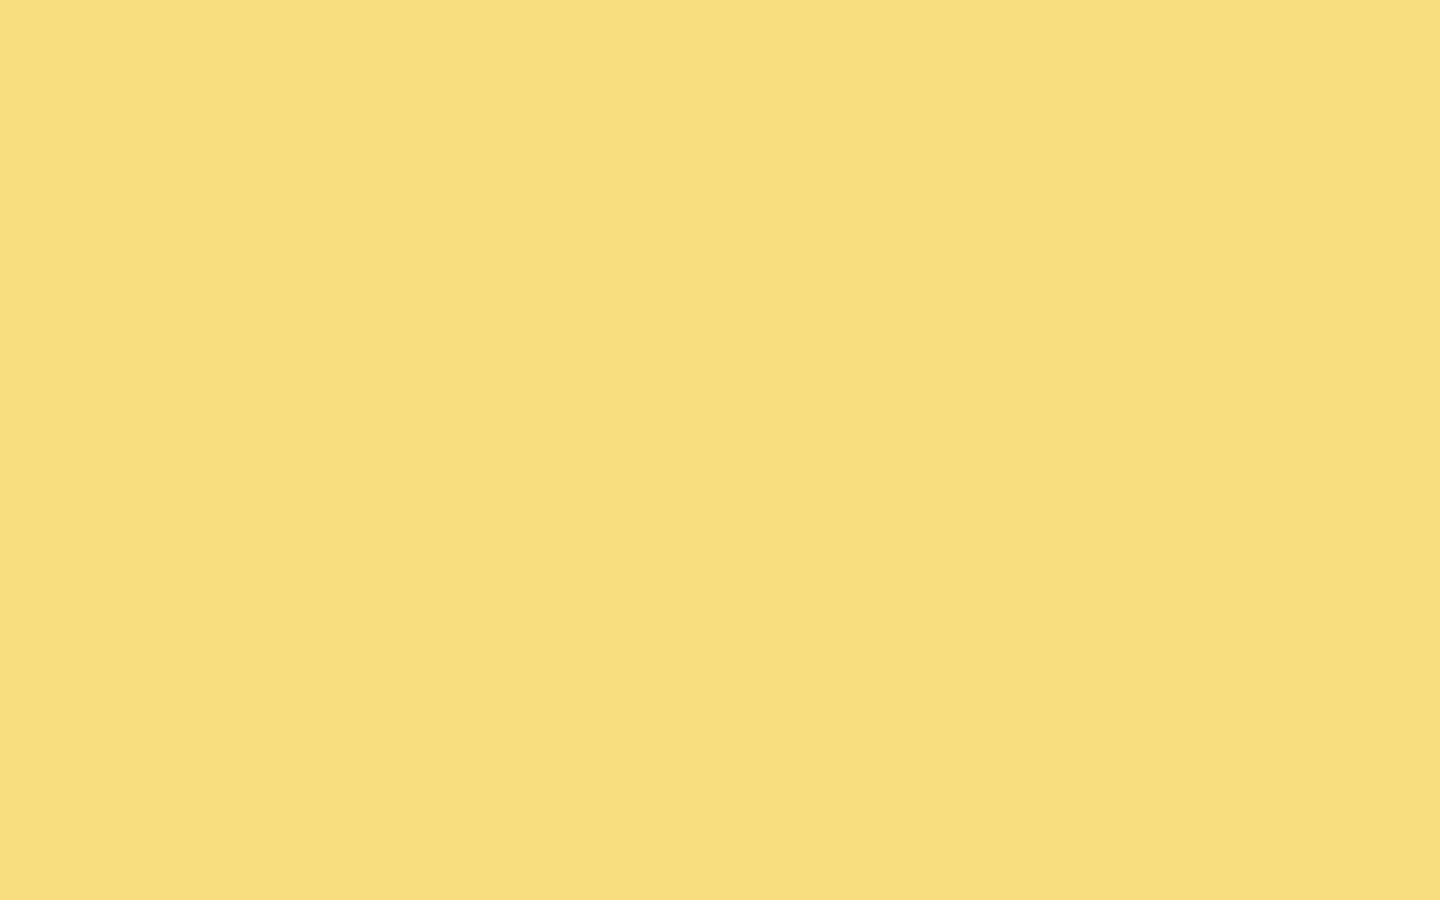 1440x900 Mellow Yellow Solid Color Background